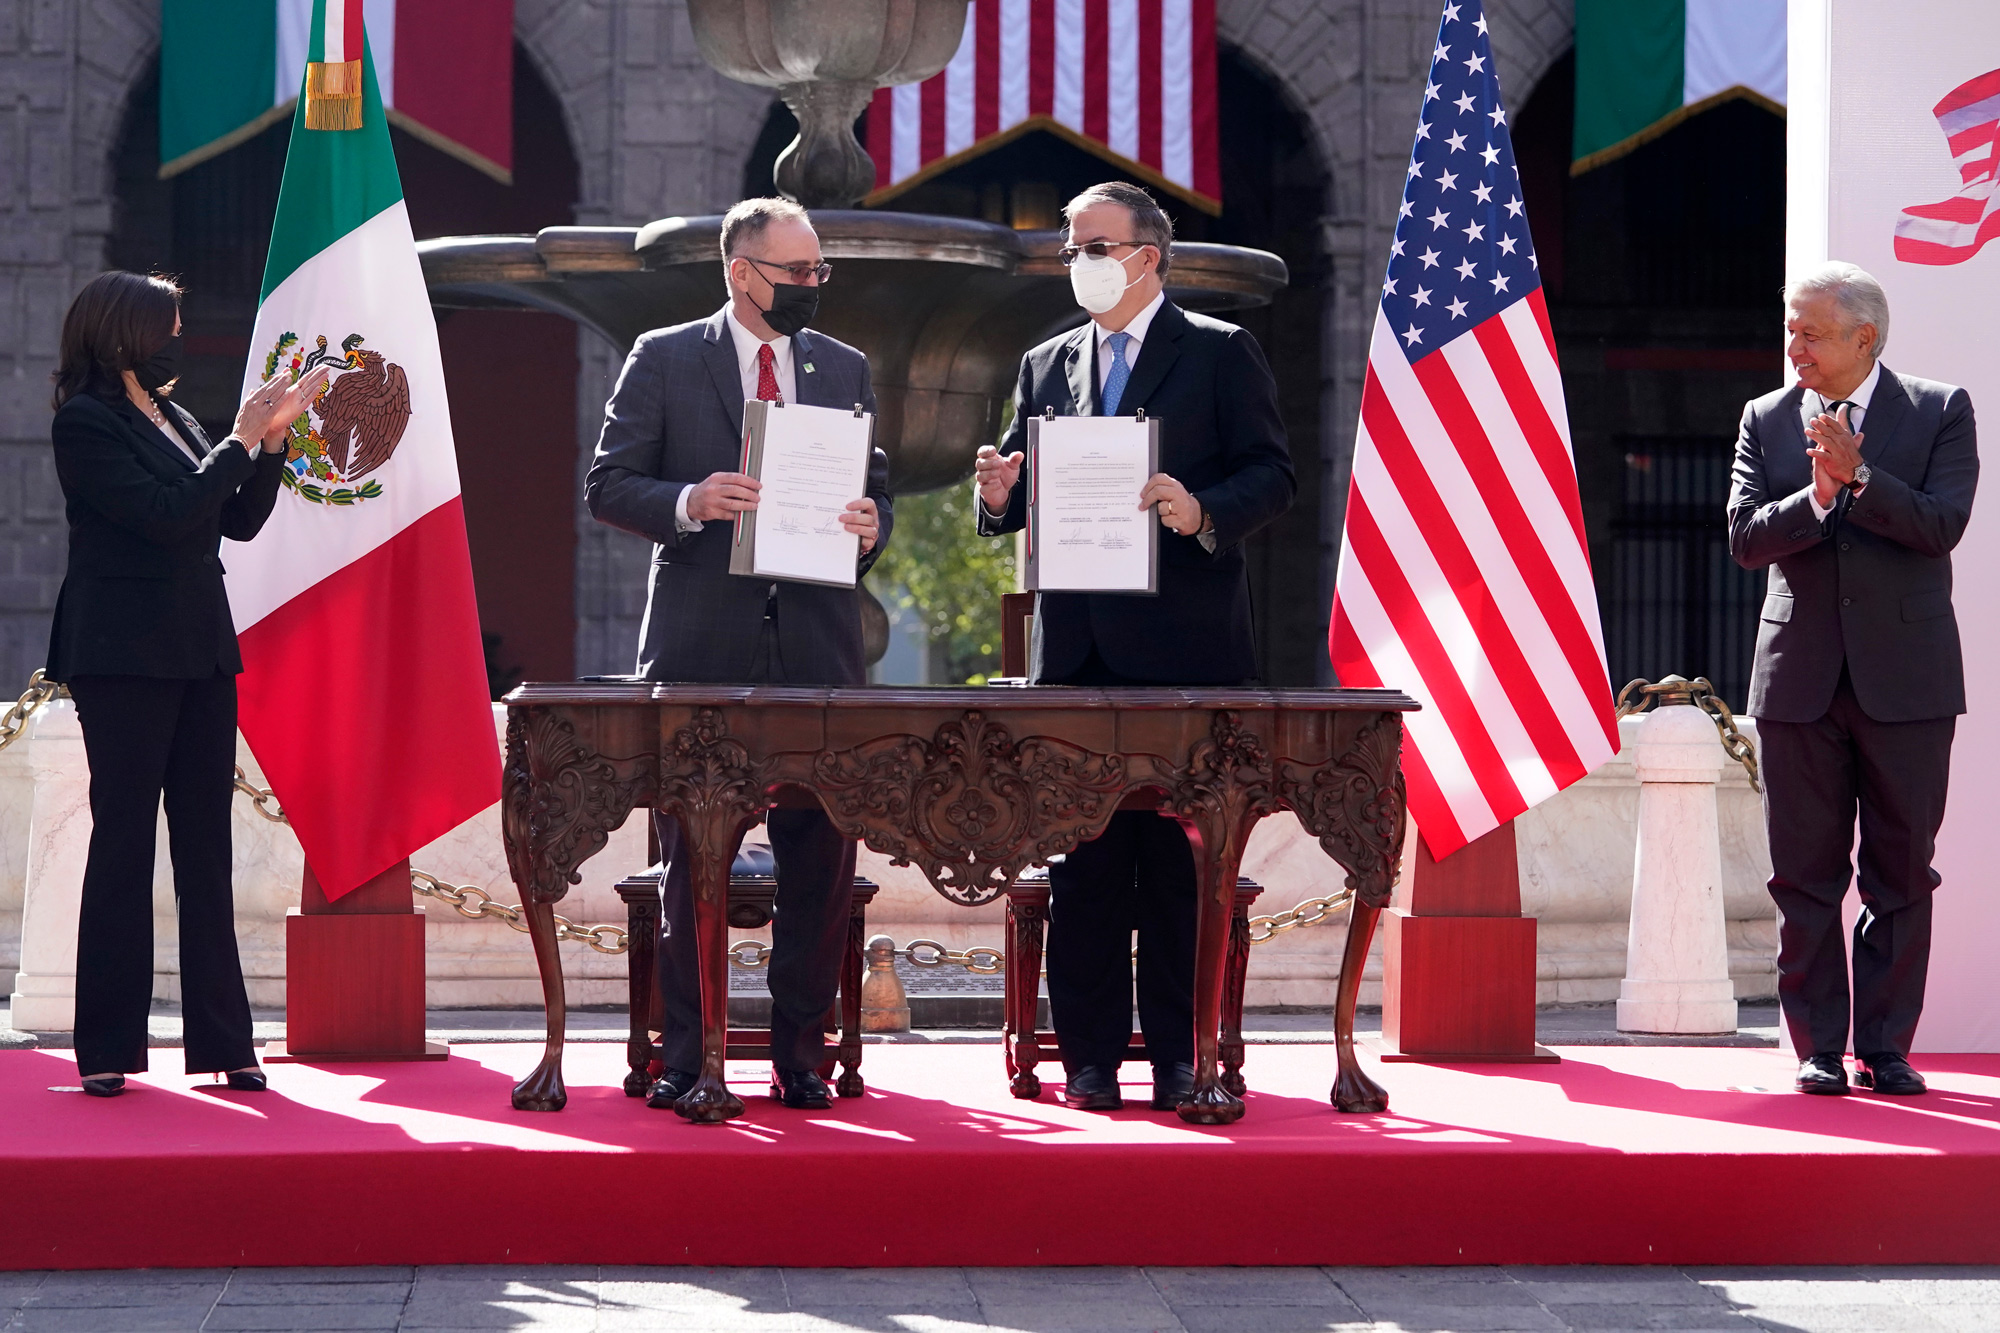 Vice President Kamala Harris, left, and Mexican President Andres Manuel Lopez Obrador, right, applaud a signing on June 8, at the National Palace in Mexico City. The signatories are Mexico's Foreign Minister Marcelo Ebrard Casaubon and John Creamer, Chargé d'Affaires US Embassy.